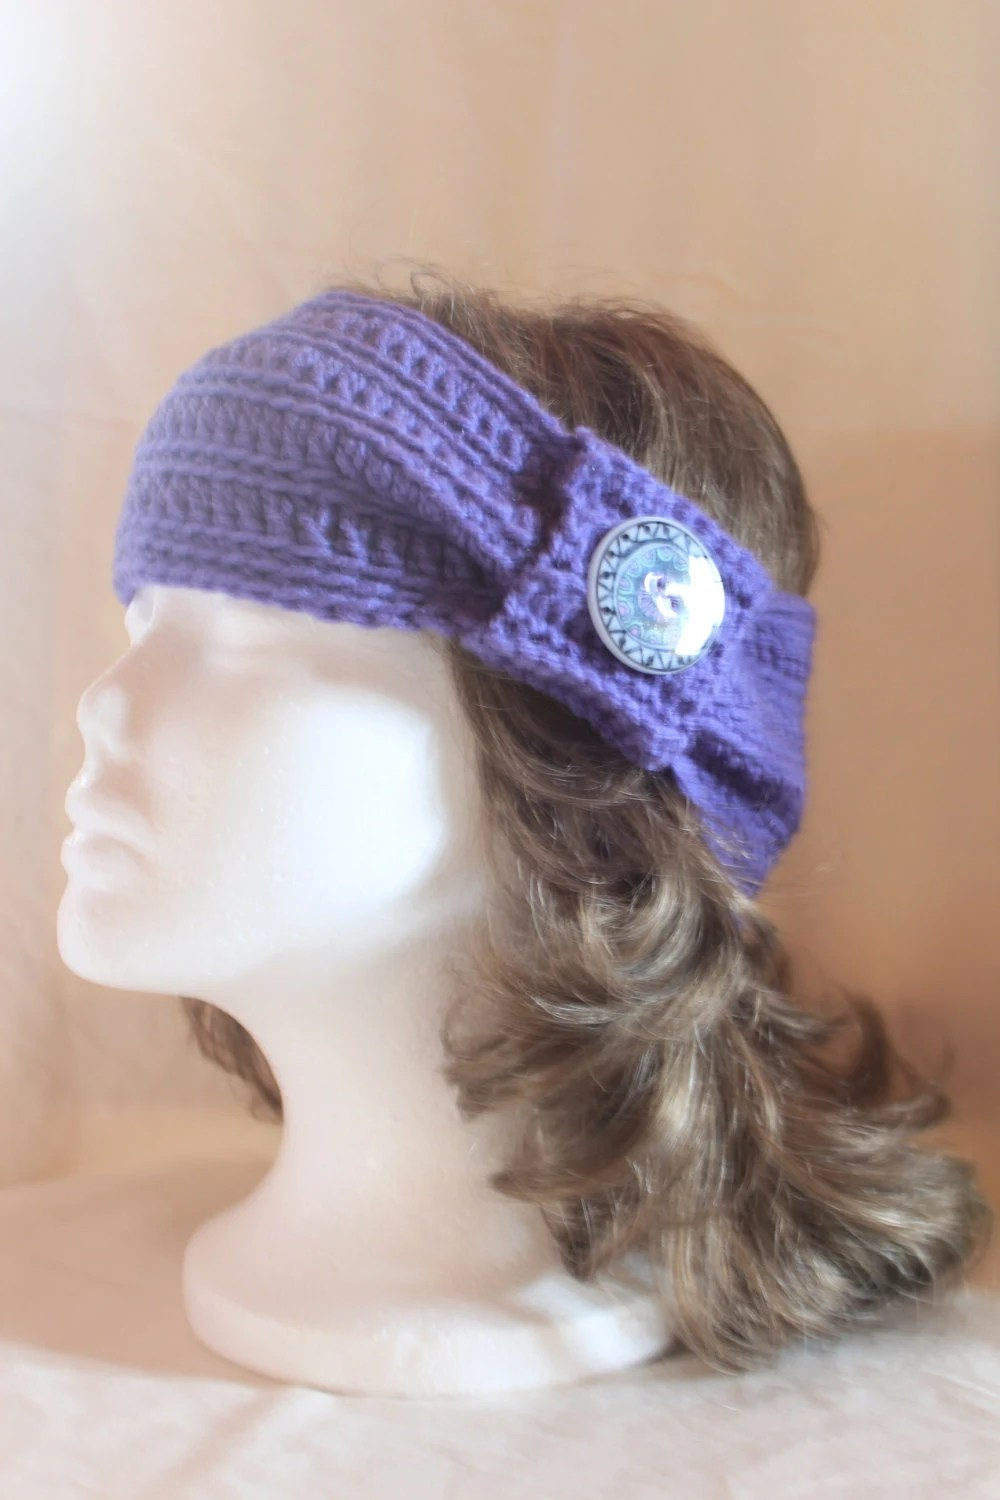 Items similar to ON SALE Ear Warmer / Headband (Steel Grey with Icy Blue Buttons) on Etsy